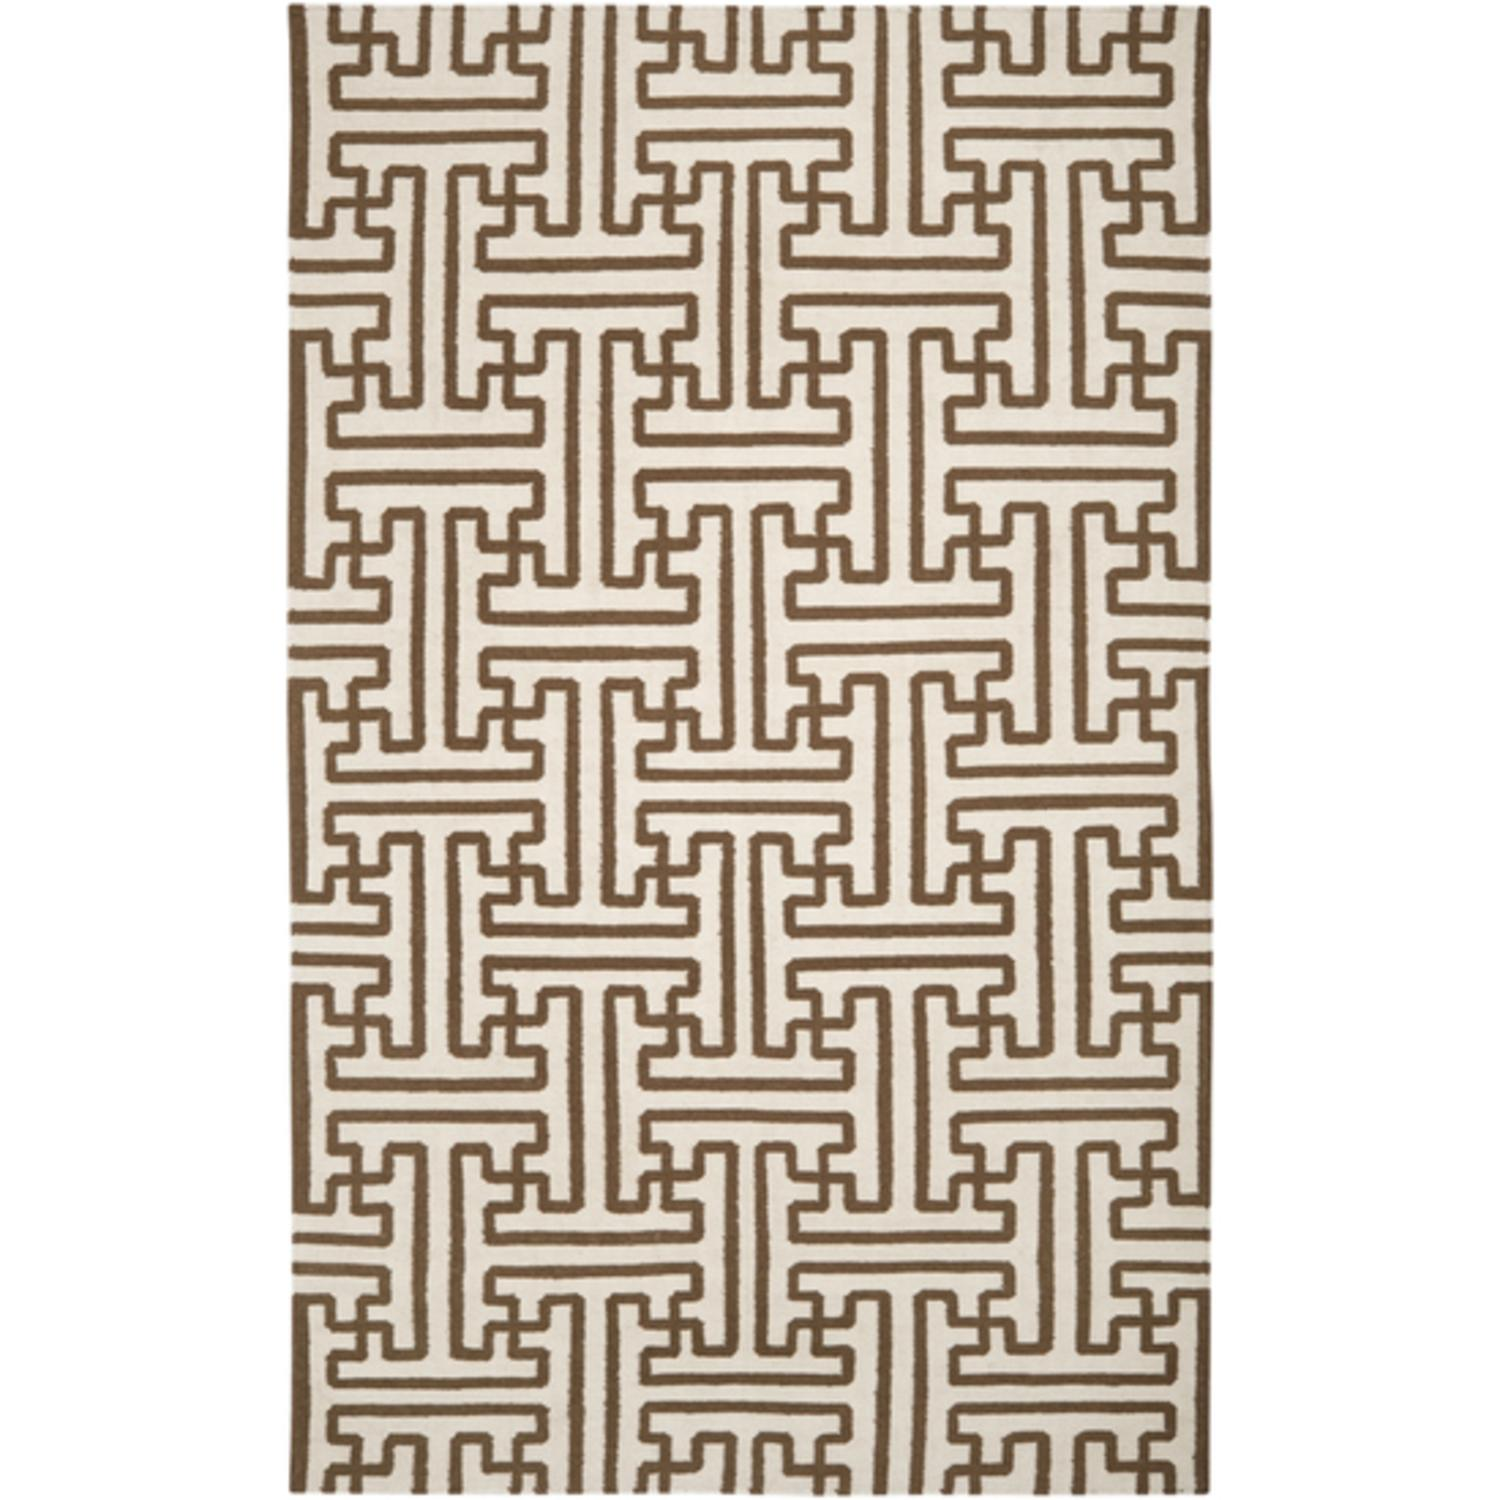 5' x 8' Block Pillars Winter White and Brown Wool Area Throw Rug